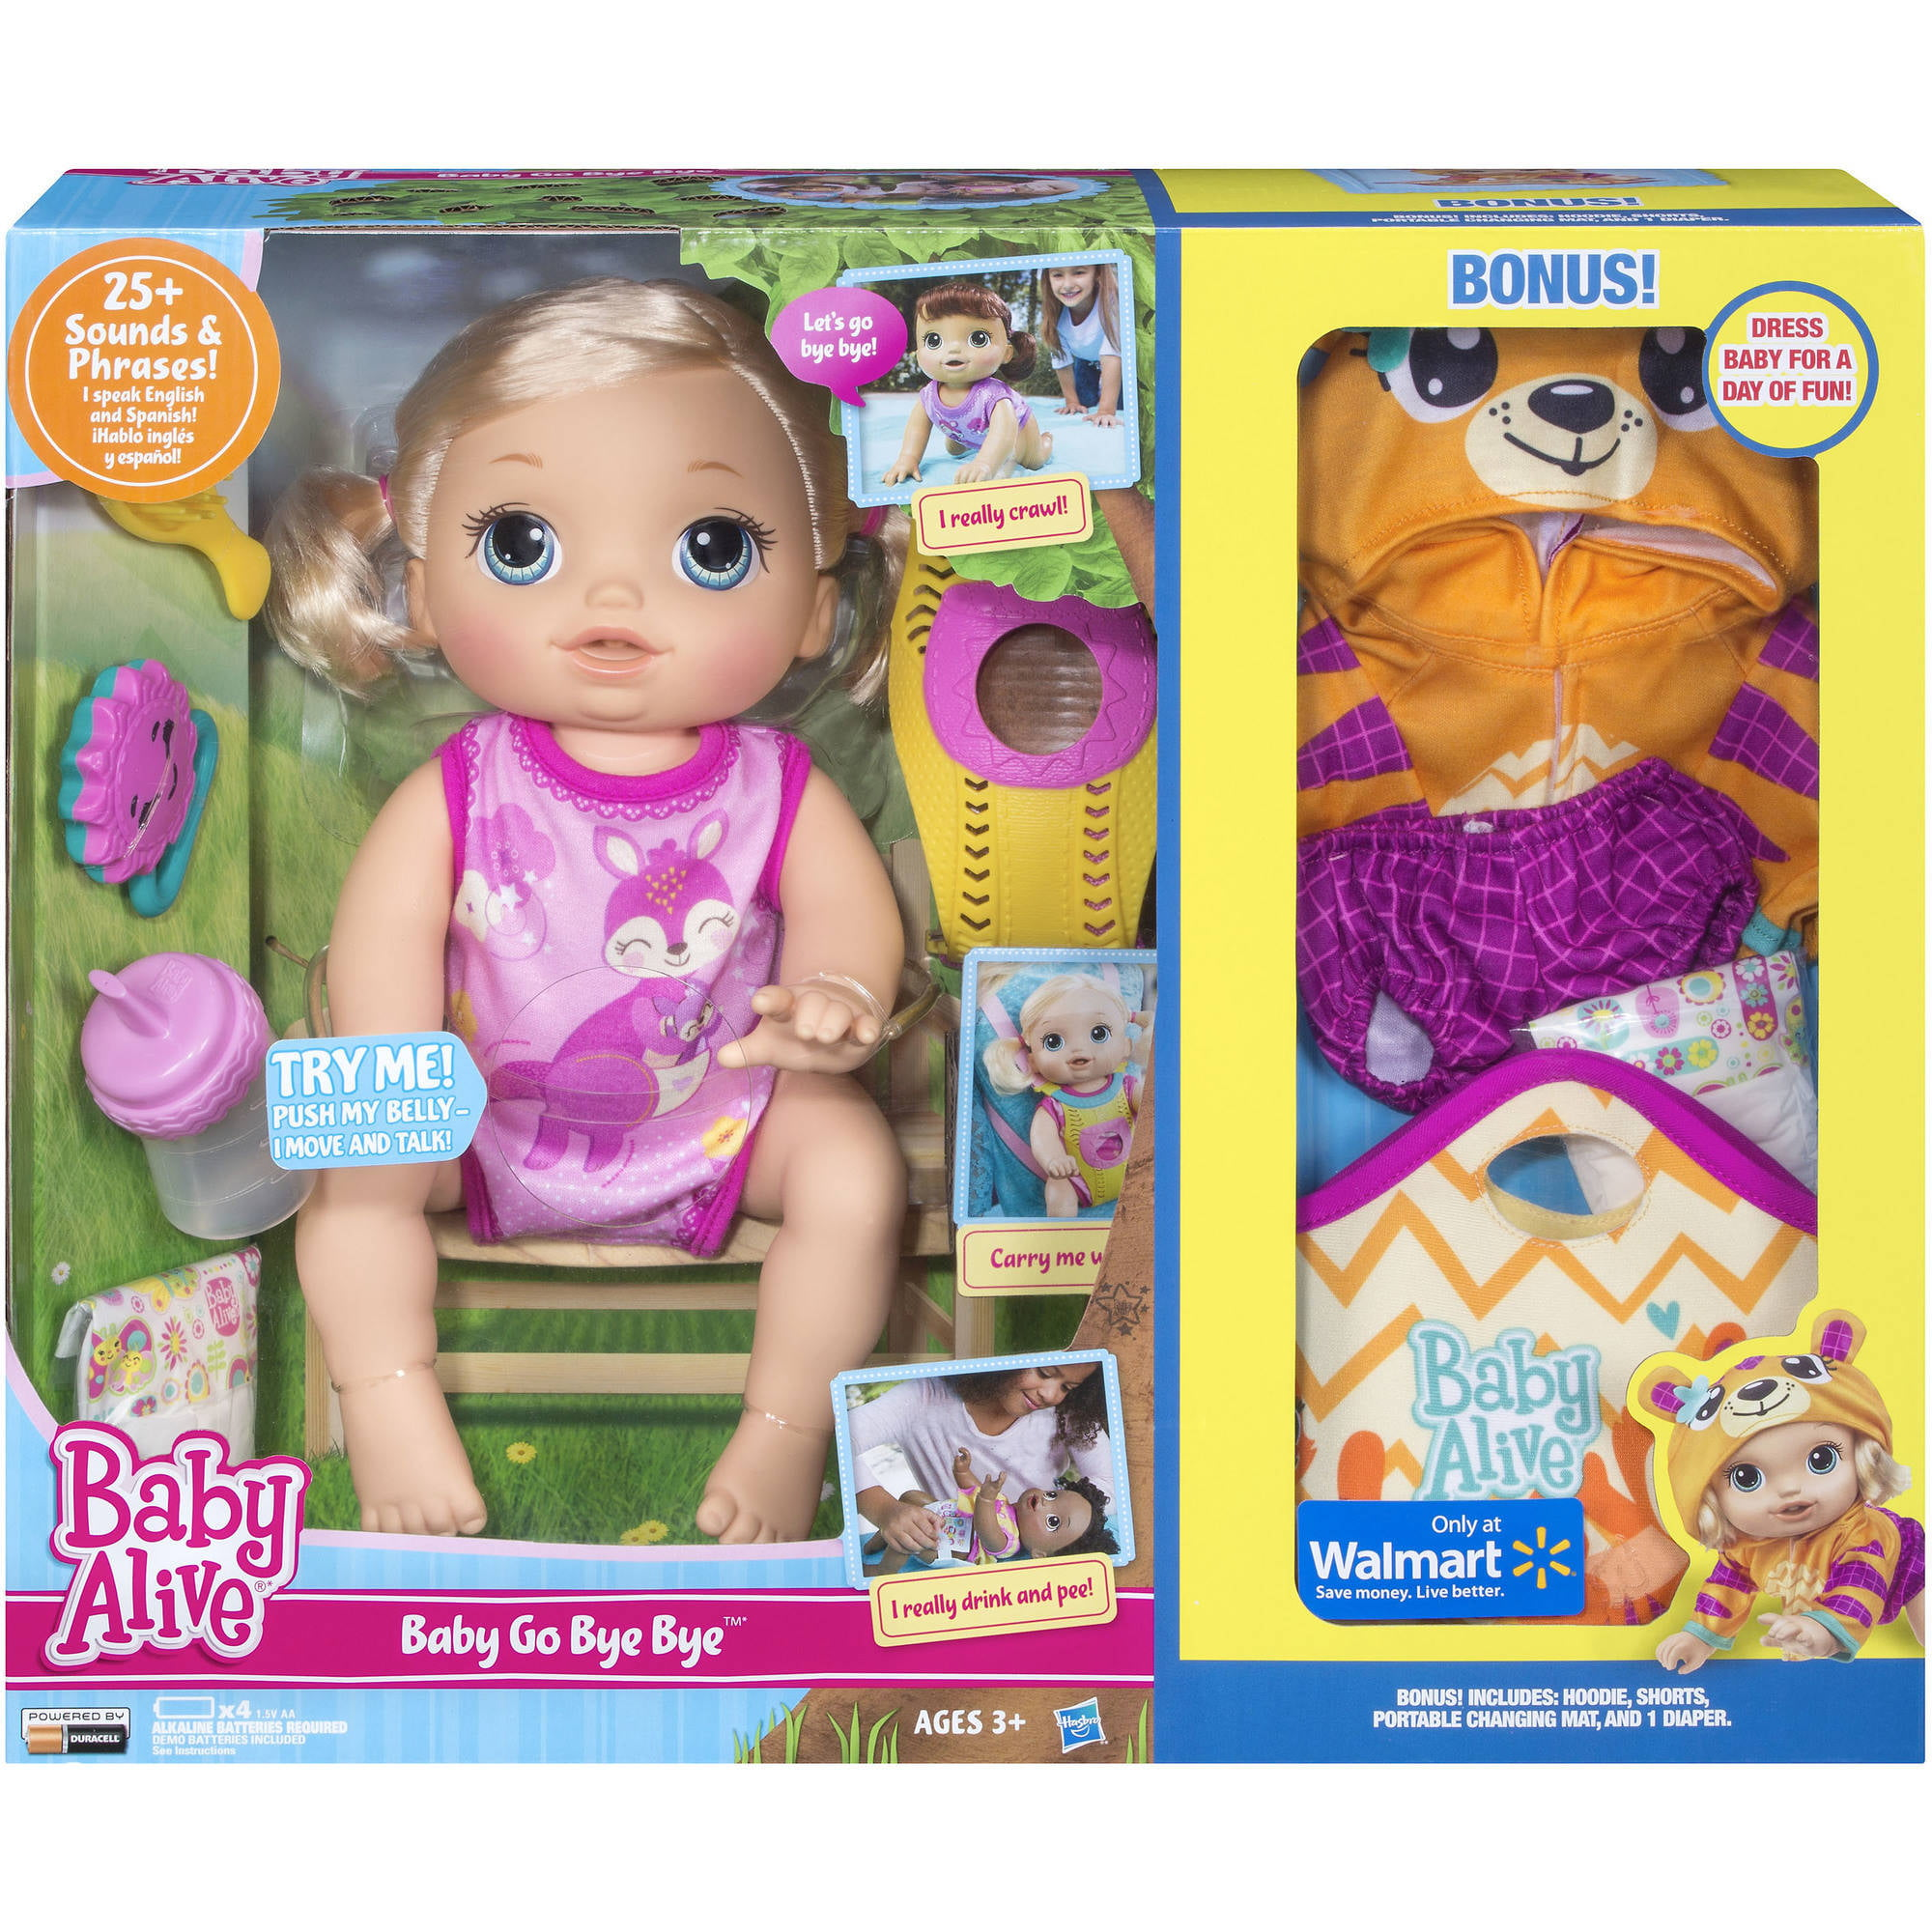 Cool Toys For Girls Baby Alive Go Bye Bye Doll Speech